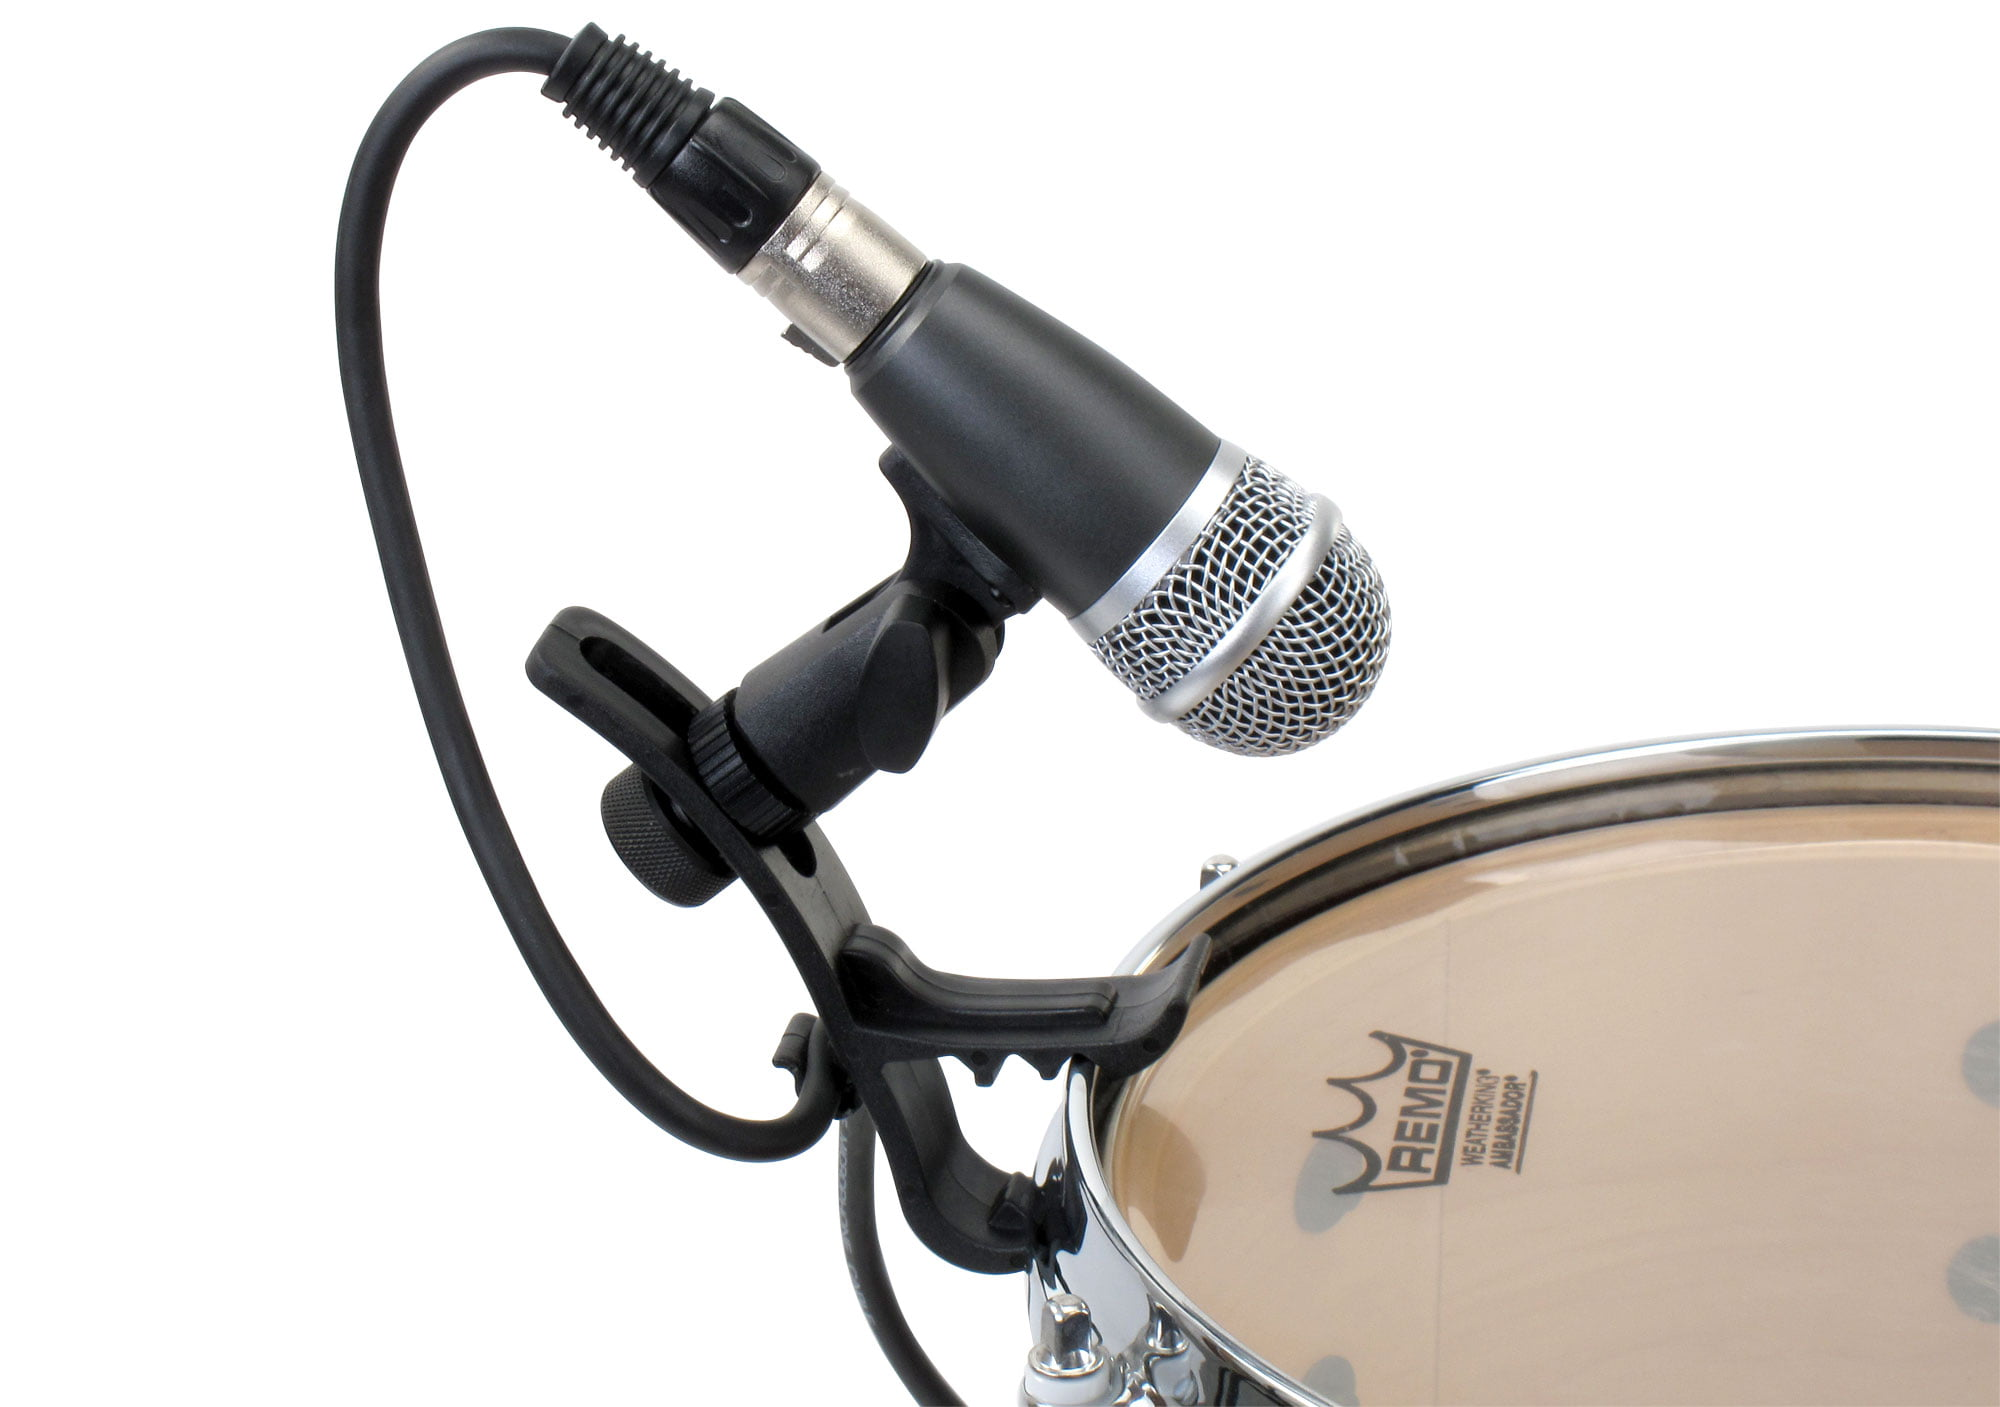 pronomic drum dms 7 drum microphone set. Black Bedroom Furniture Sets. Home Design Ideas